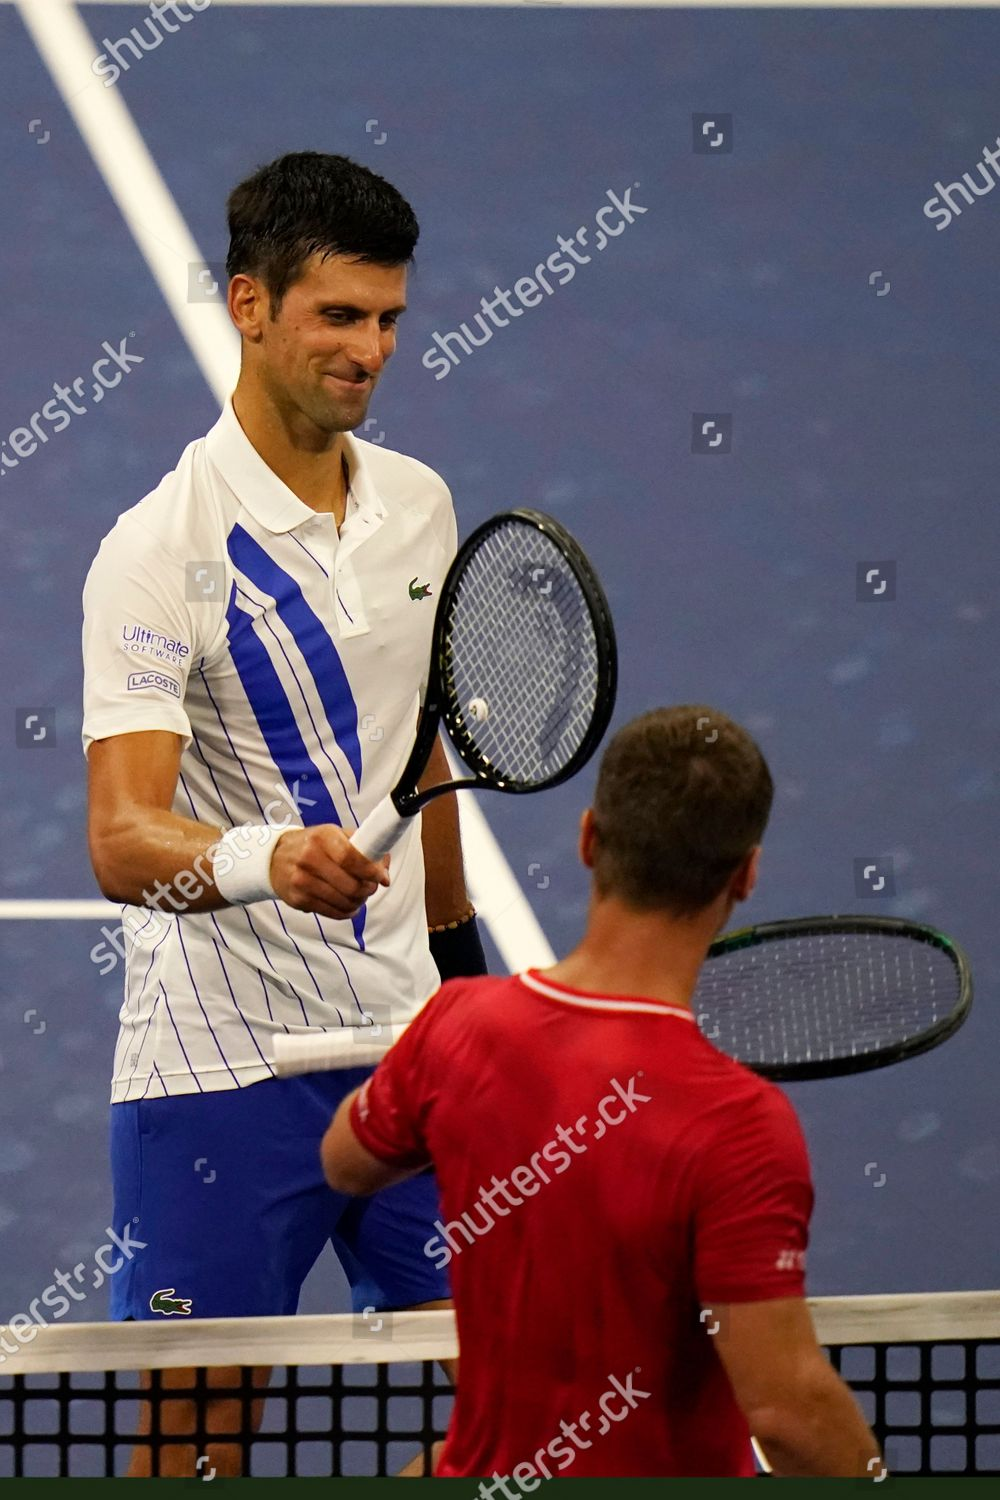 Novak Djokovic Serbia Top Bangs His Racket Editorial Stock Photo Stock Image Shutterstock